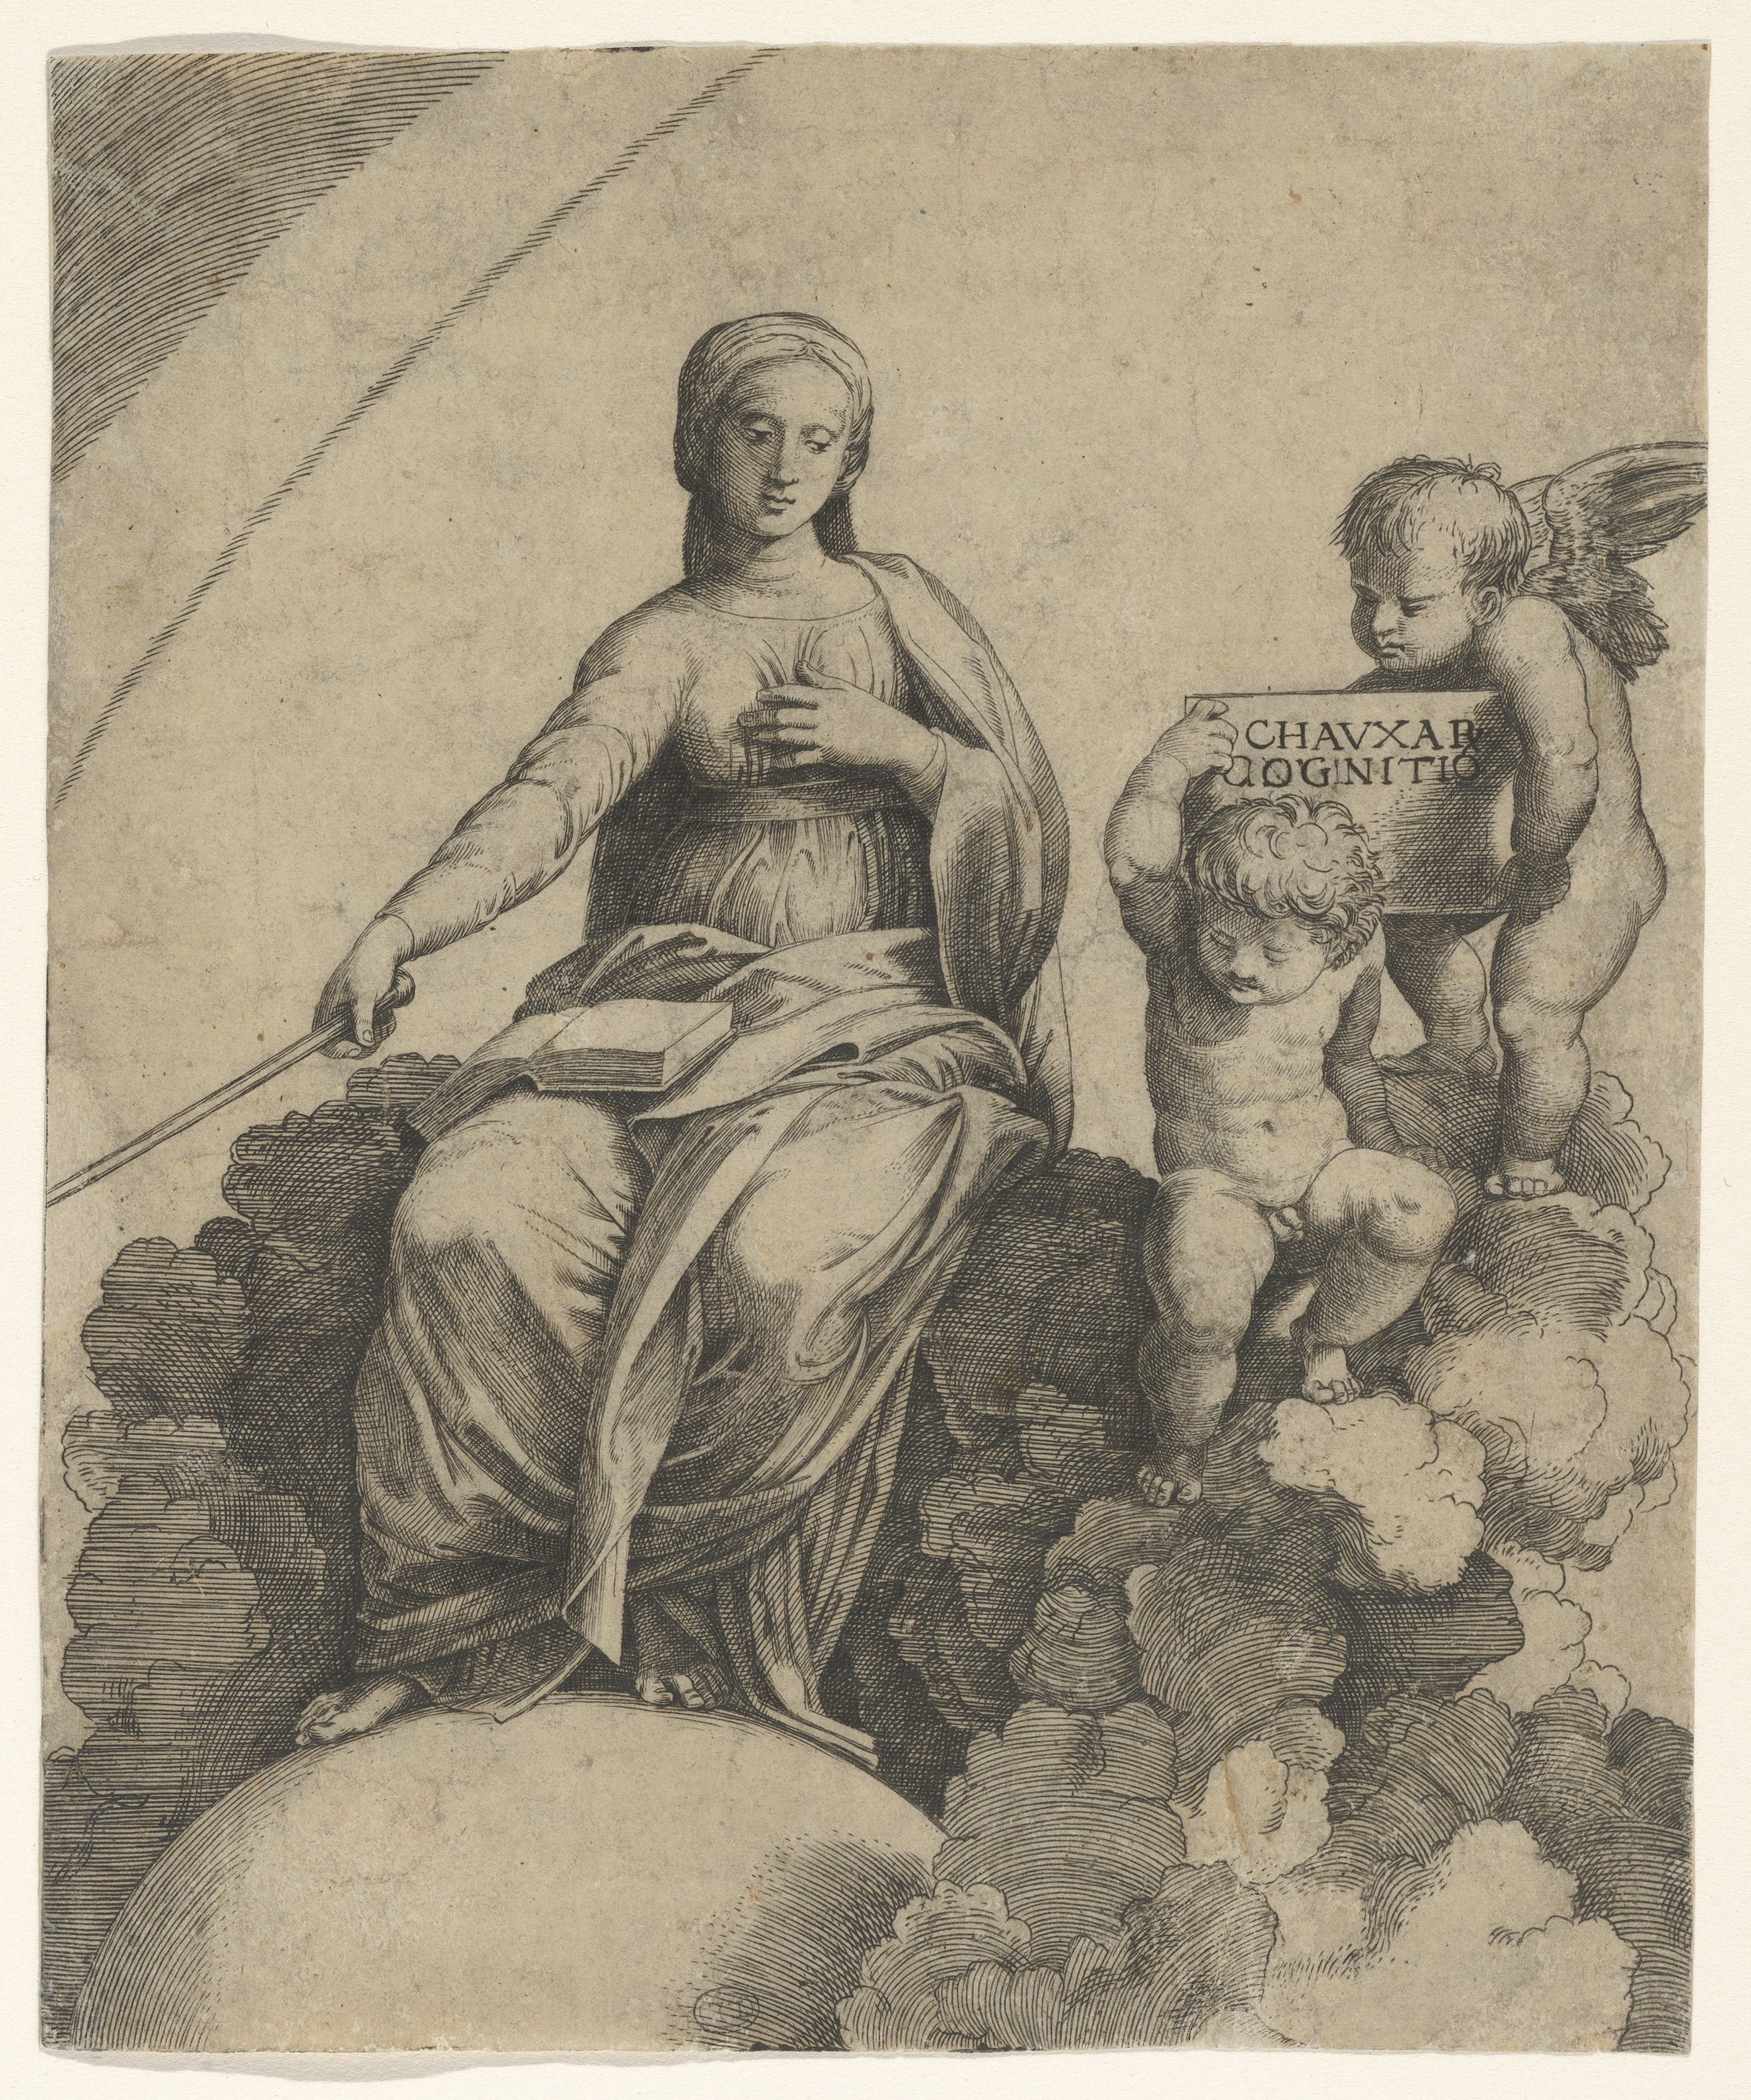 Engraving of the personification of Philosophy sitting on clouds with her feet resting on a globe, two putti at right holding a tablet